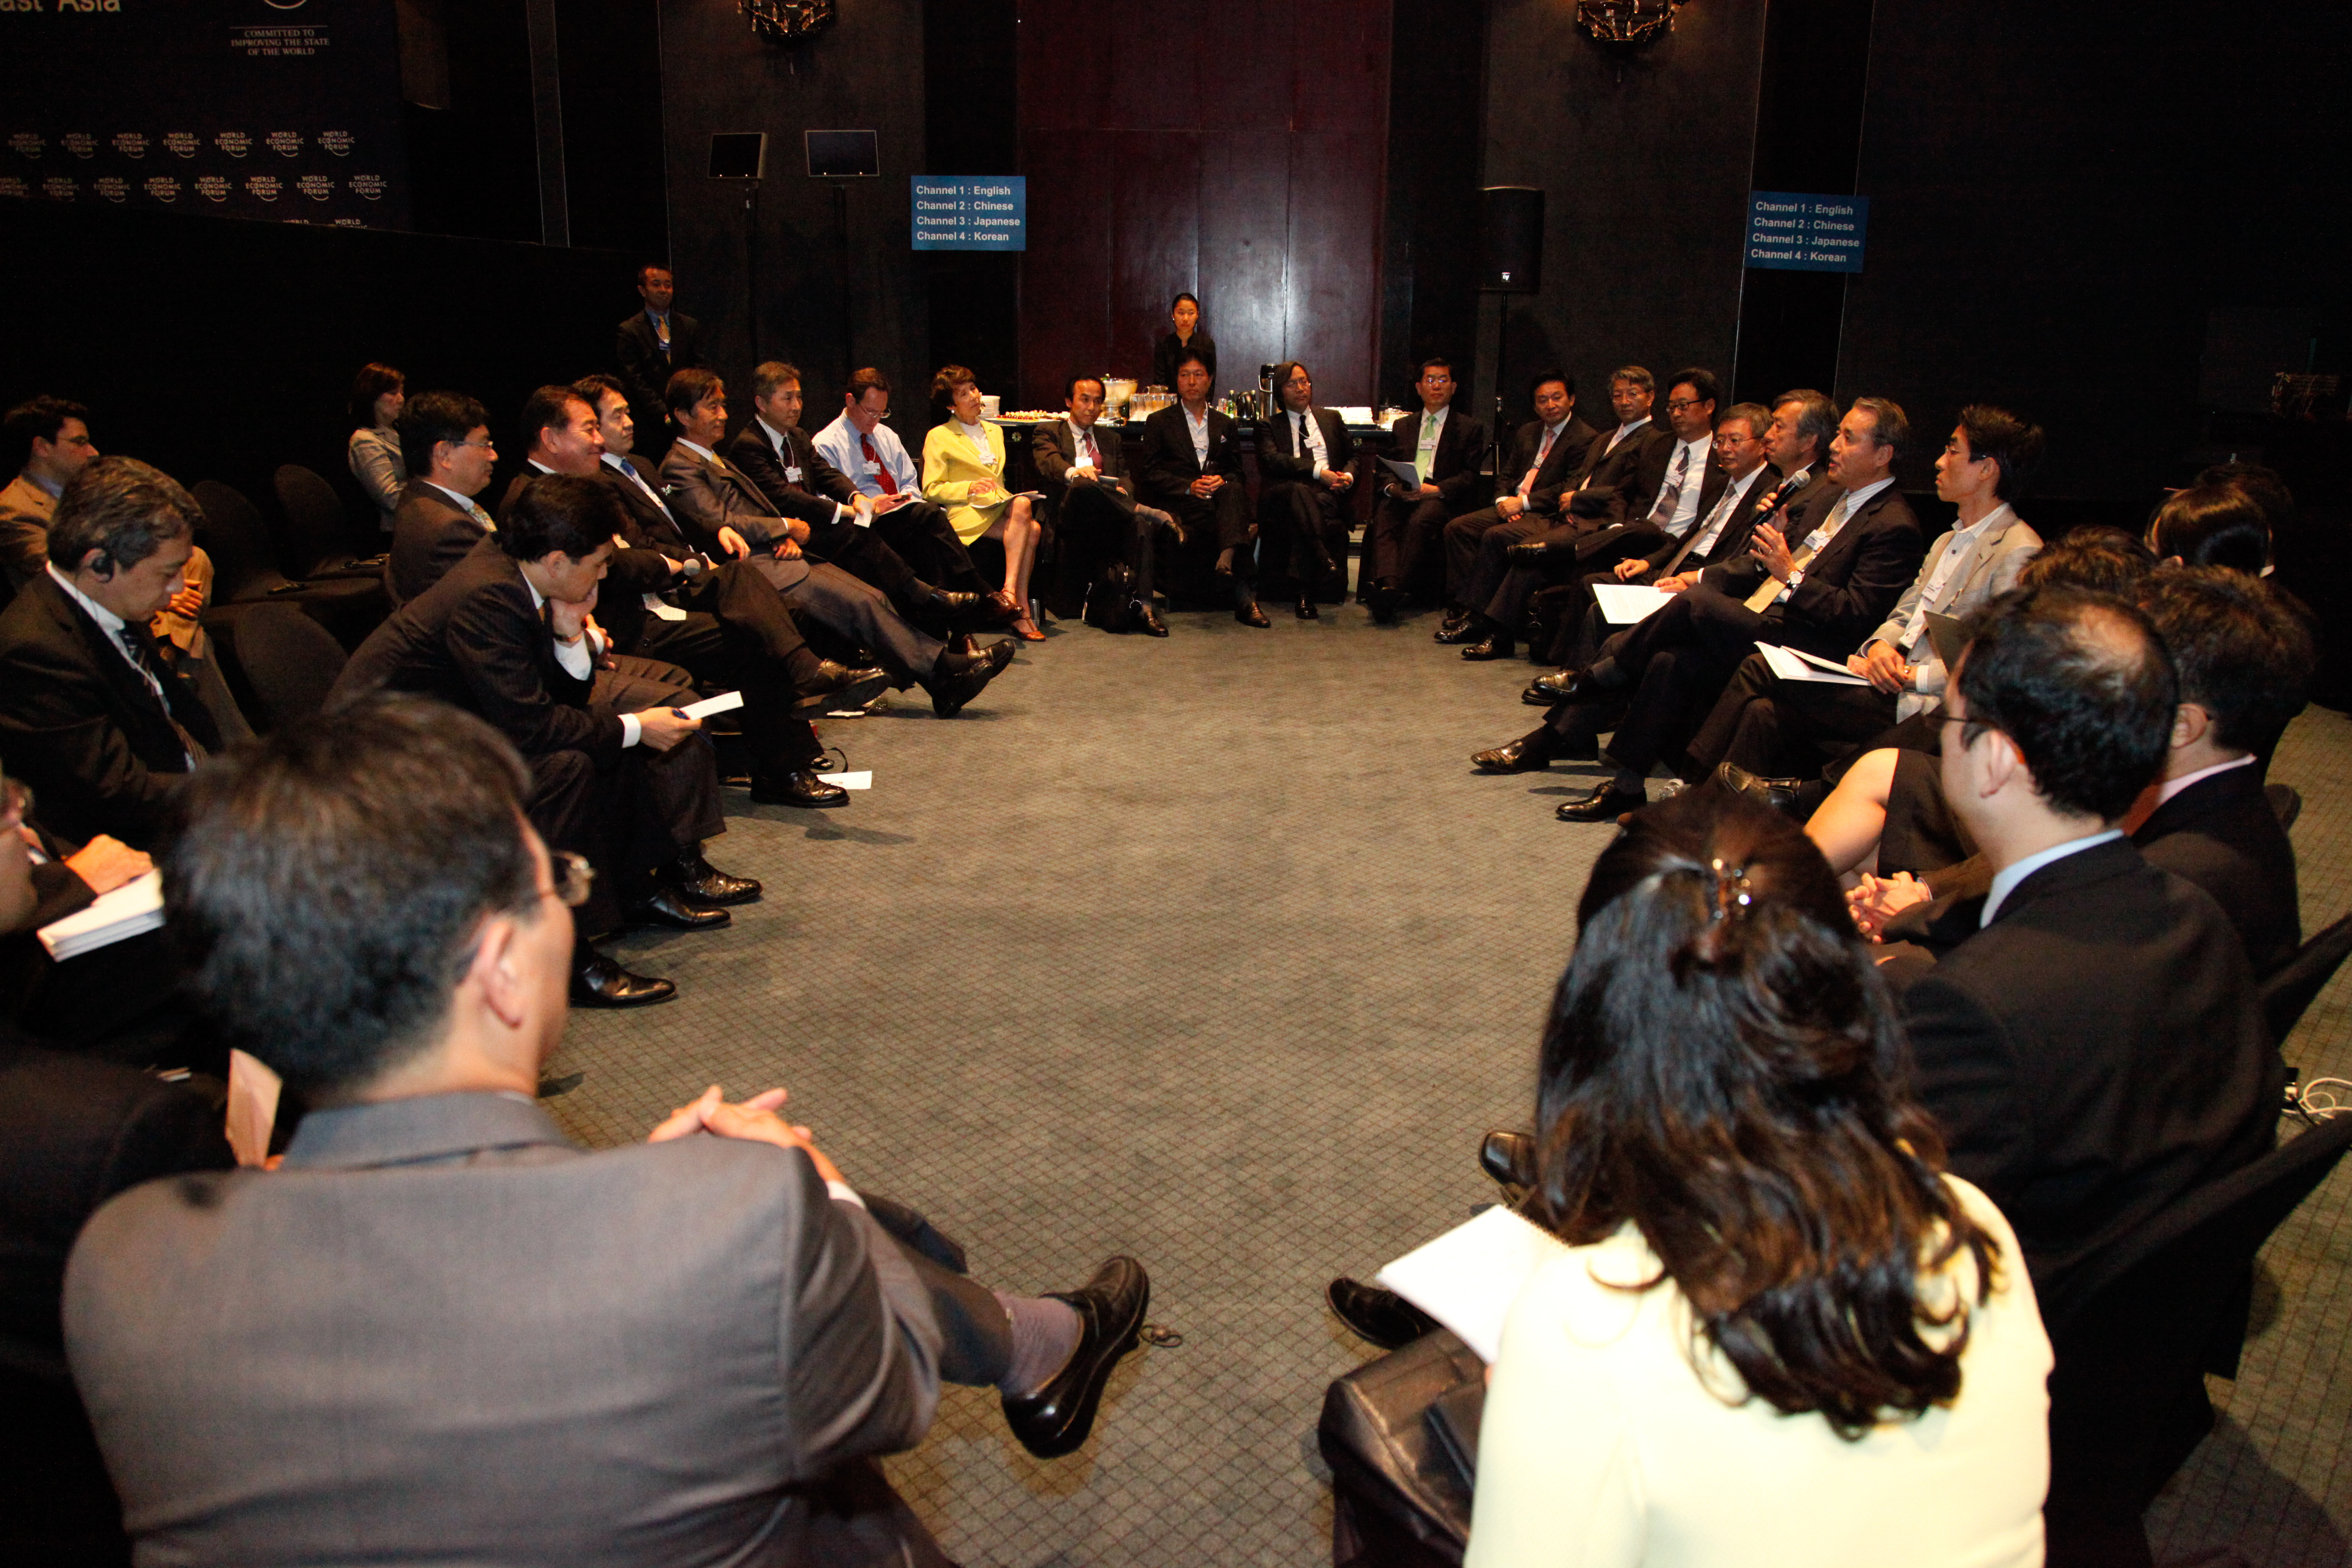 Participants at the Korea Japan Relations session